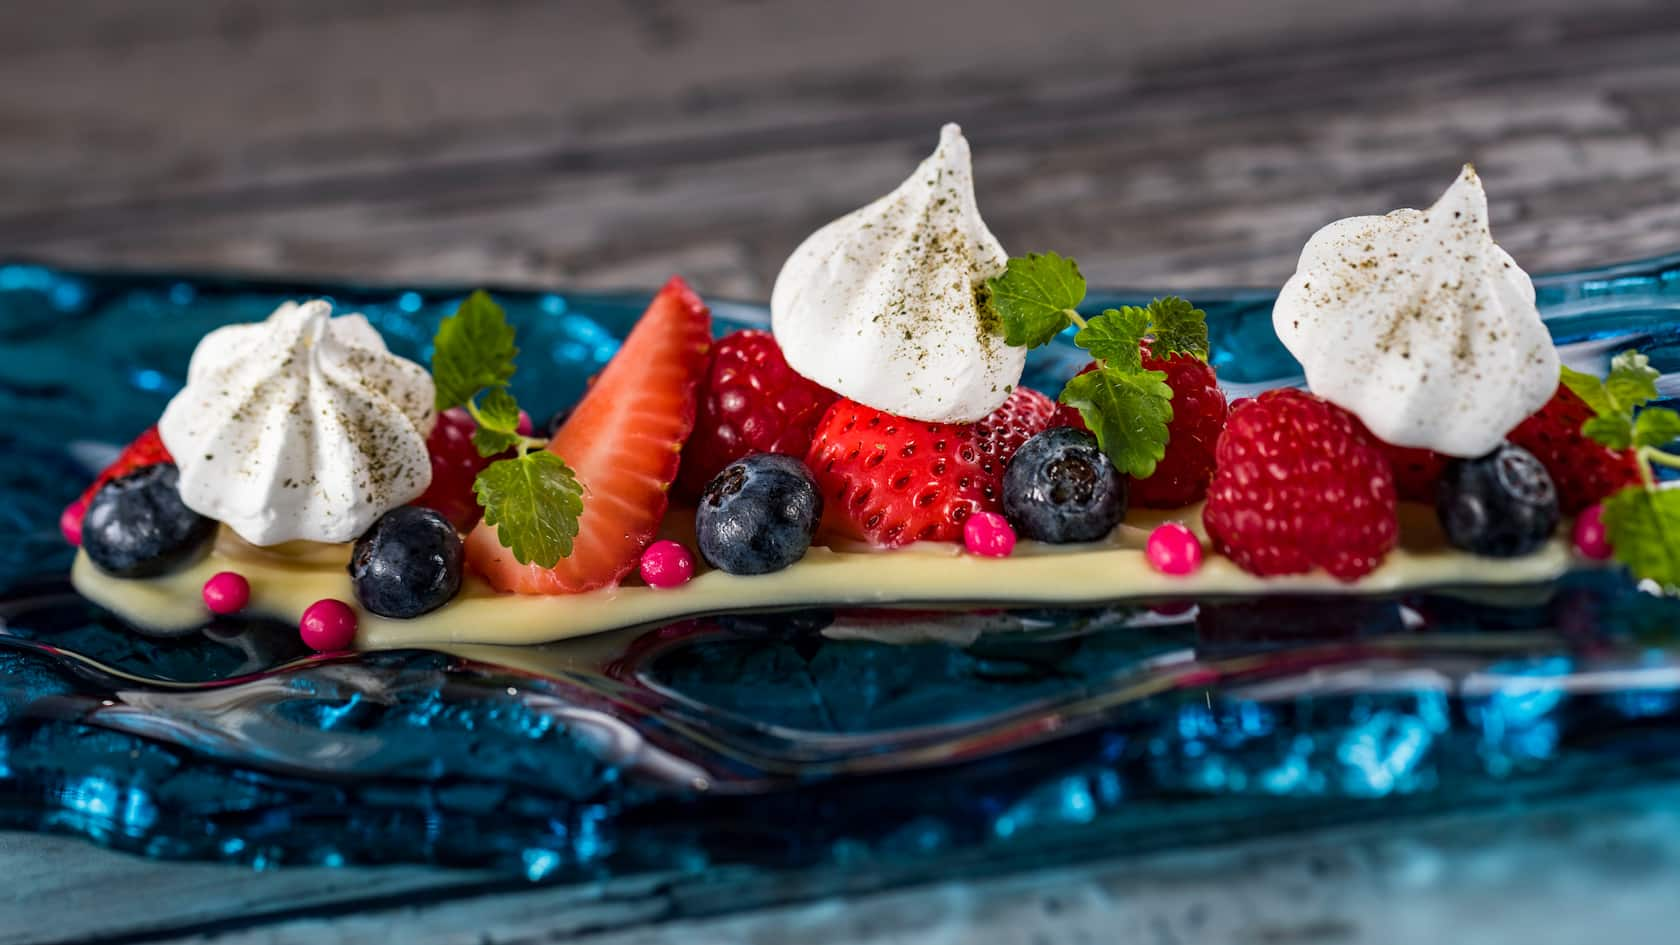 Strawberries, raspberries, blueberries and cranberries artfully arrange on a decorative plate with cream and herbs